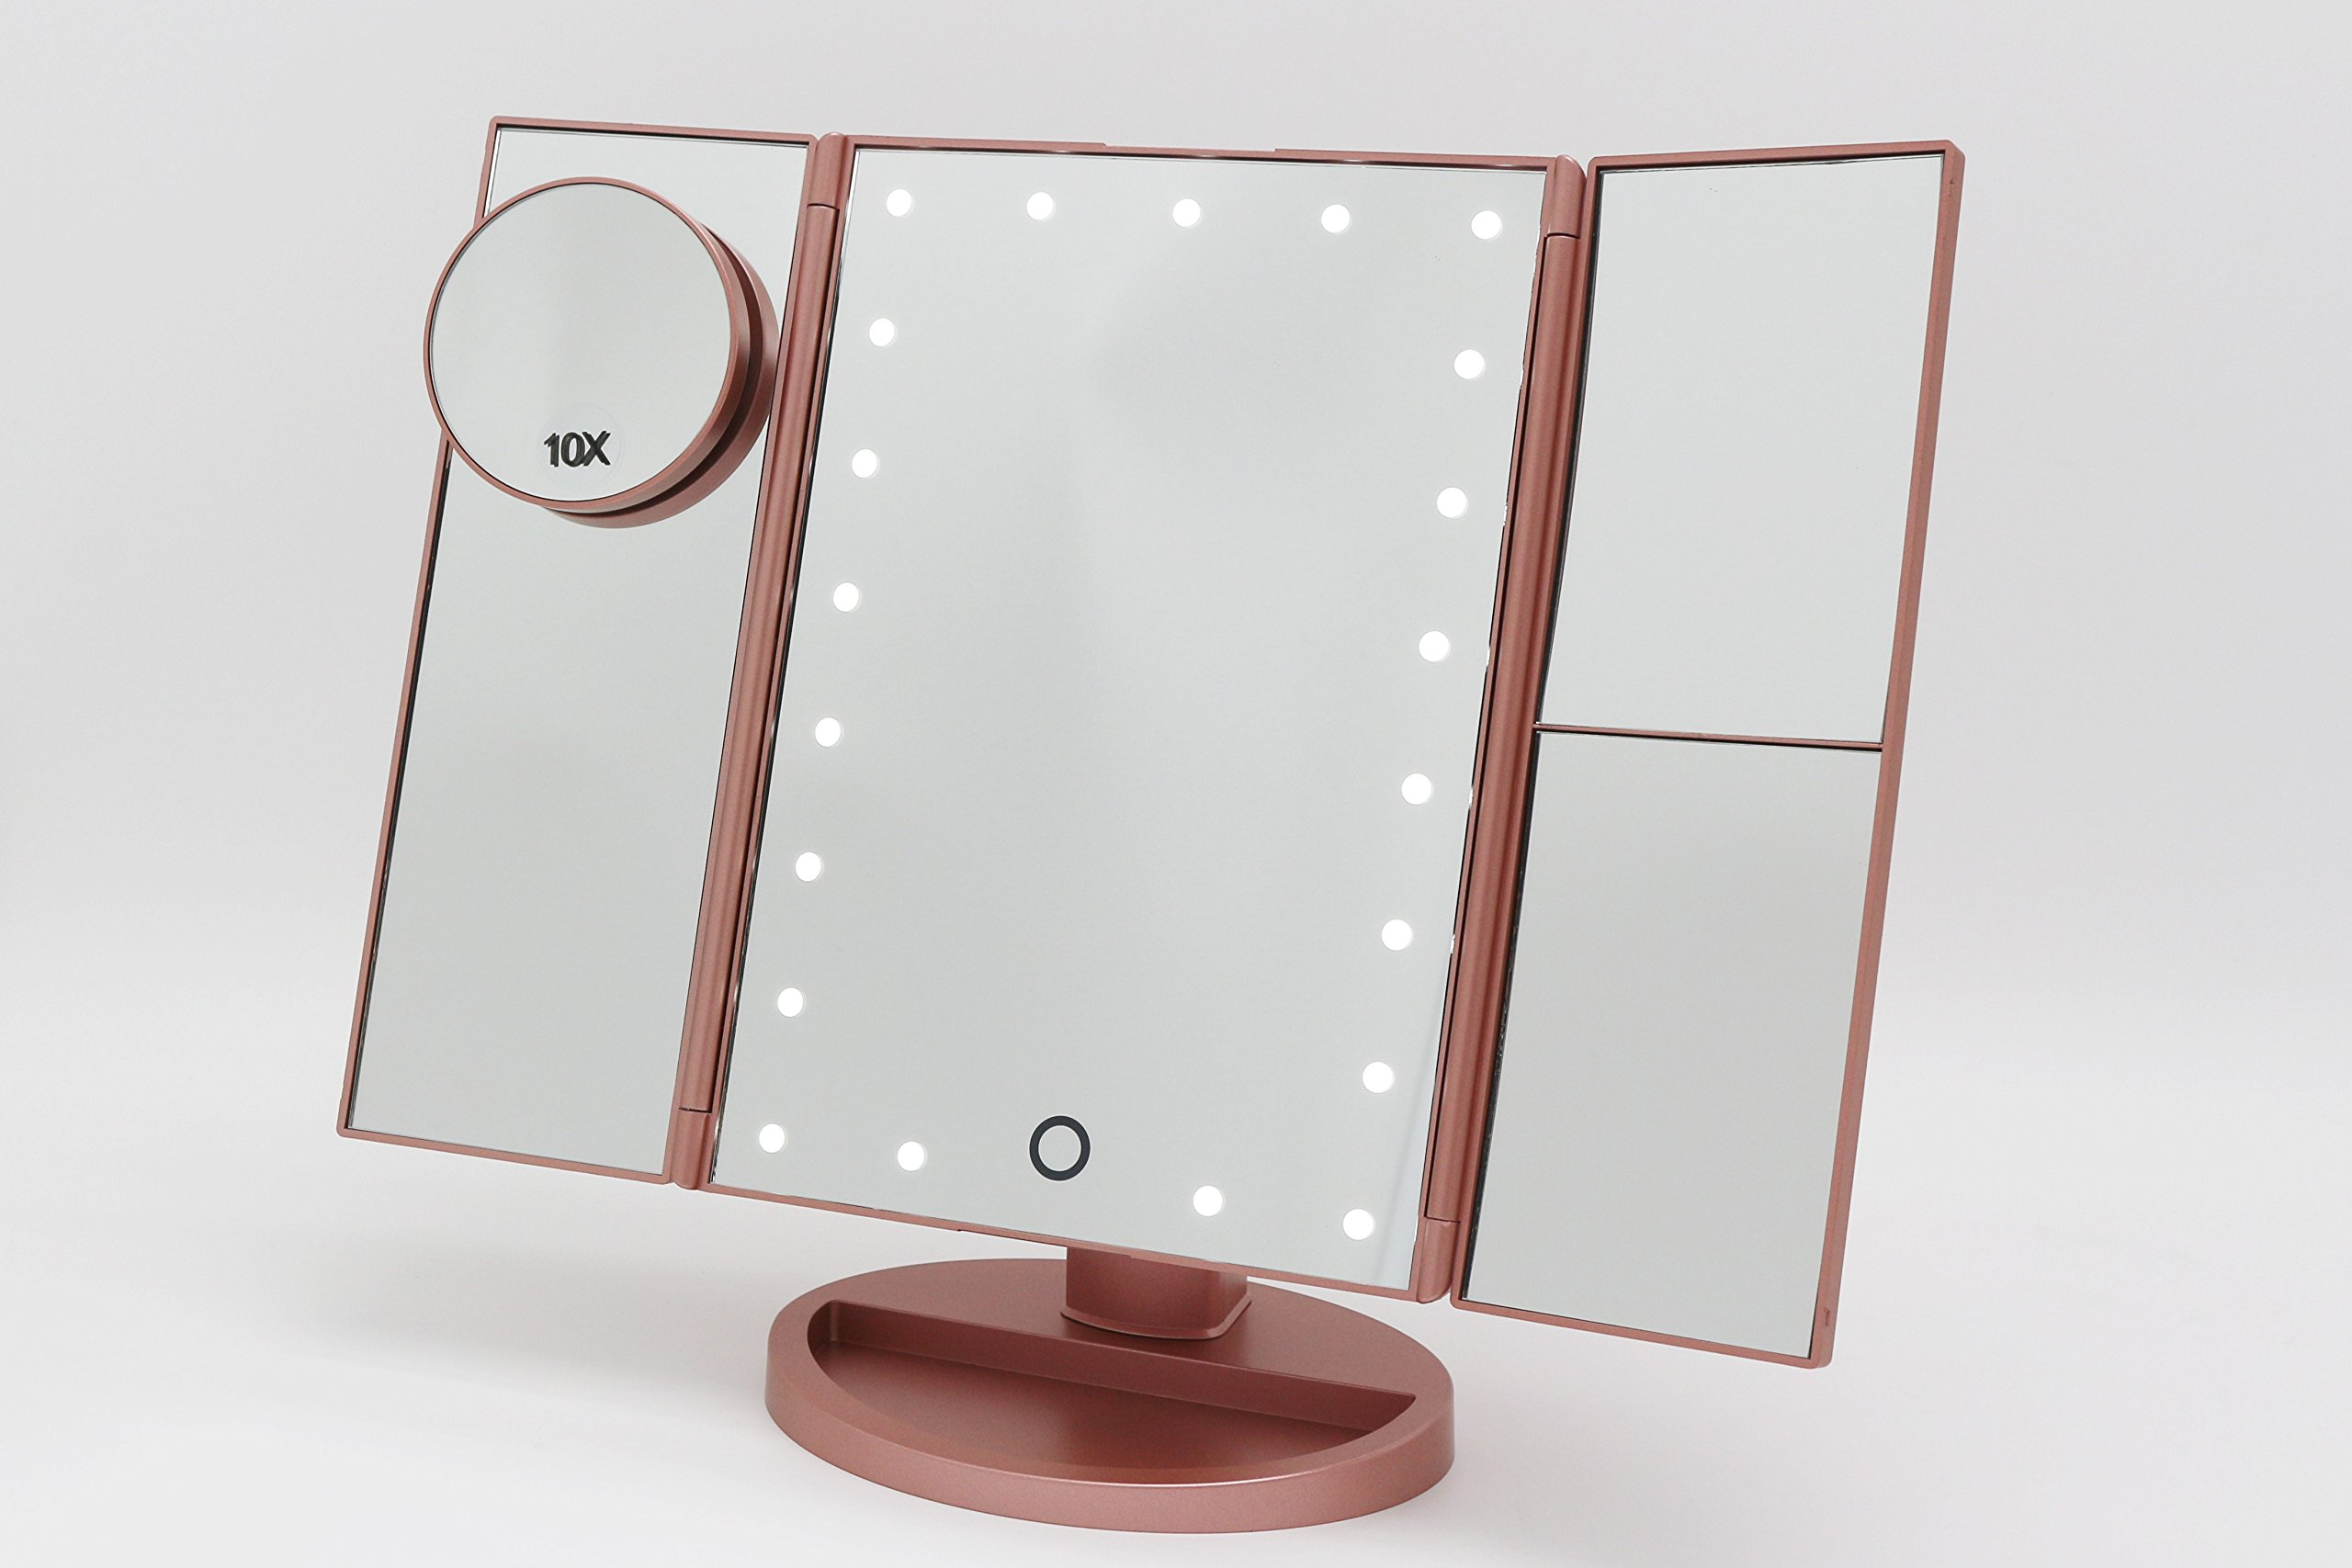 lmnop Trifold Vanity Makeup Mirror with Touch Screen Adjustable 21 LED Lights - Rose Gold